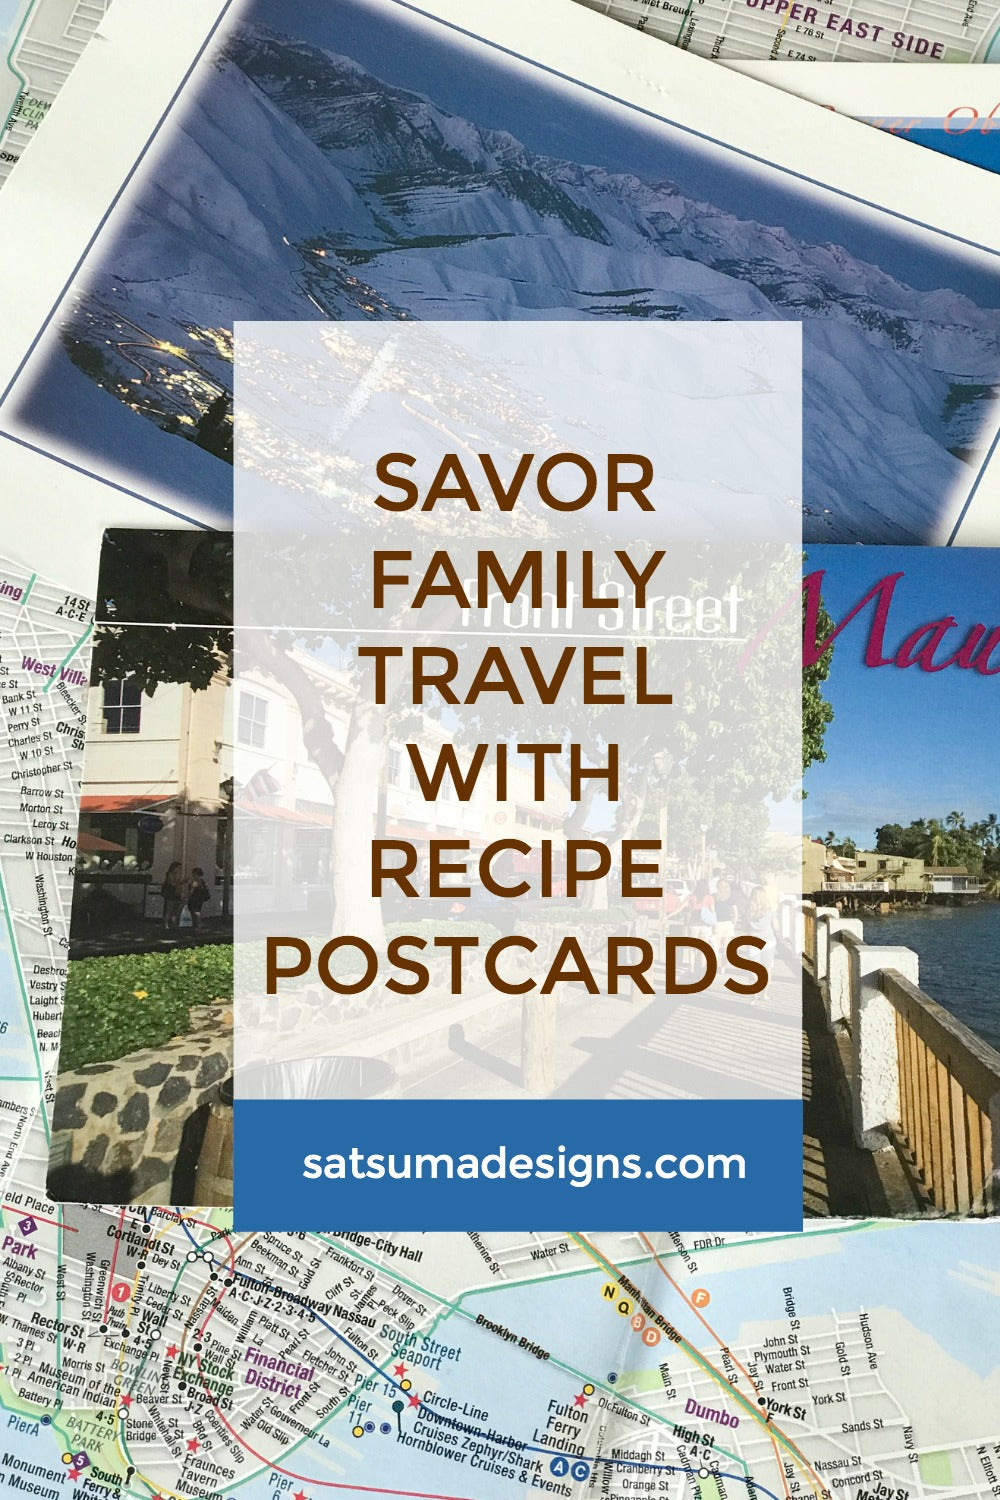 Savor Family Travel with Recipe Postcards